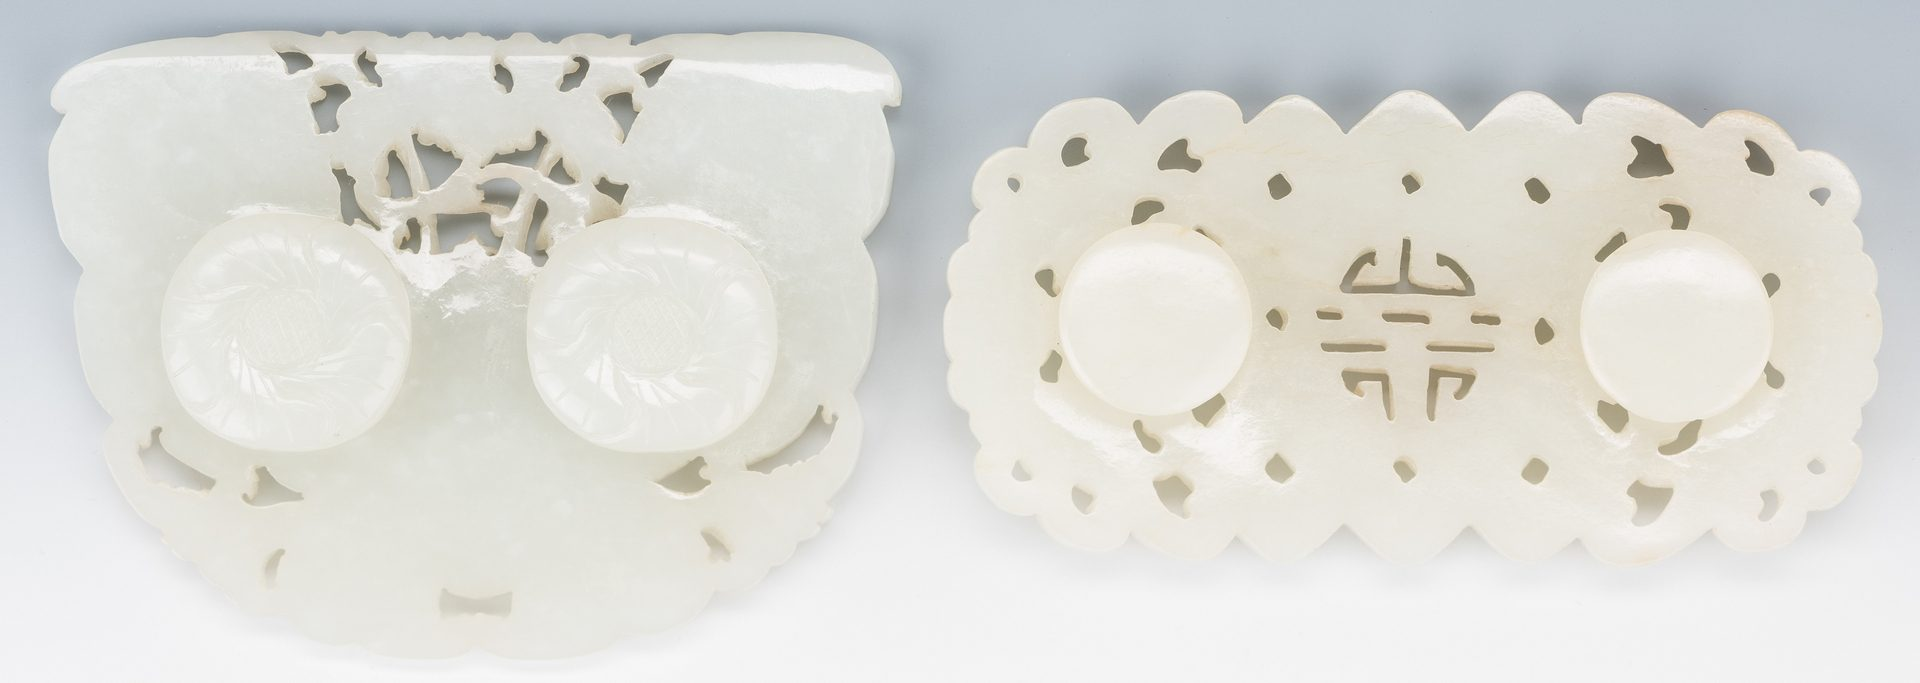 Lot 1: 2 Chinese White/Pale Celadon Carved Belt Buckles